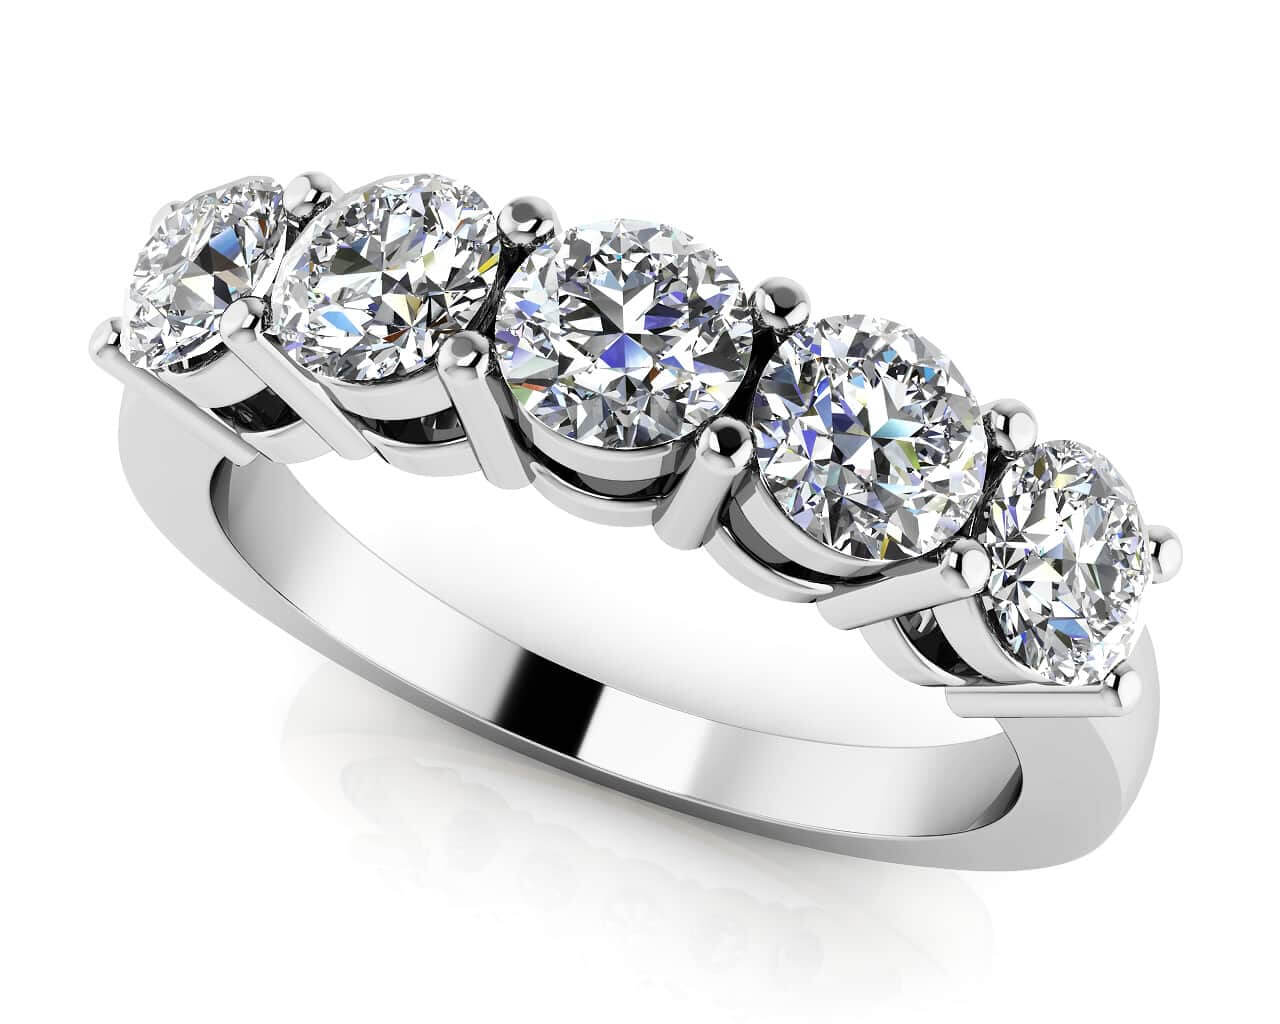 jewelry collection - 25th Wedding Anniversary Rings